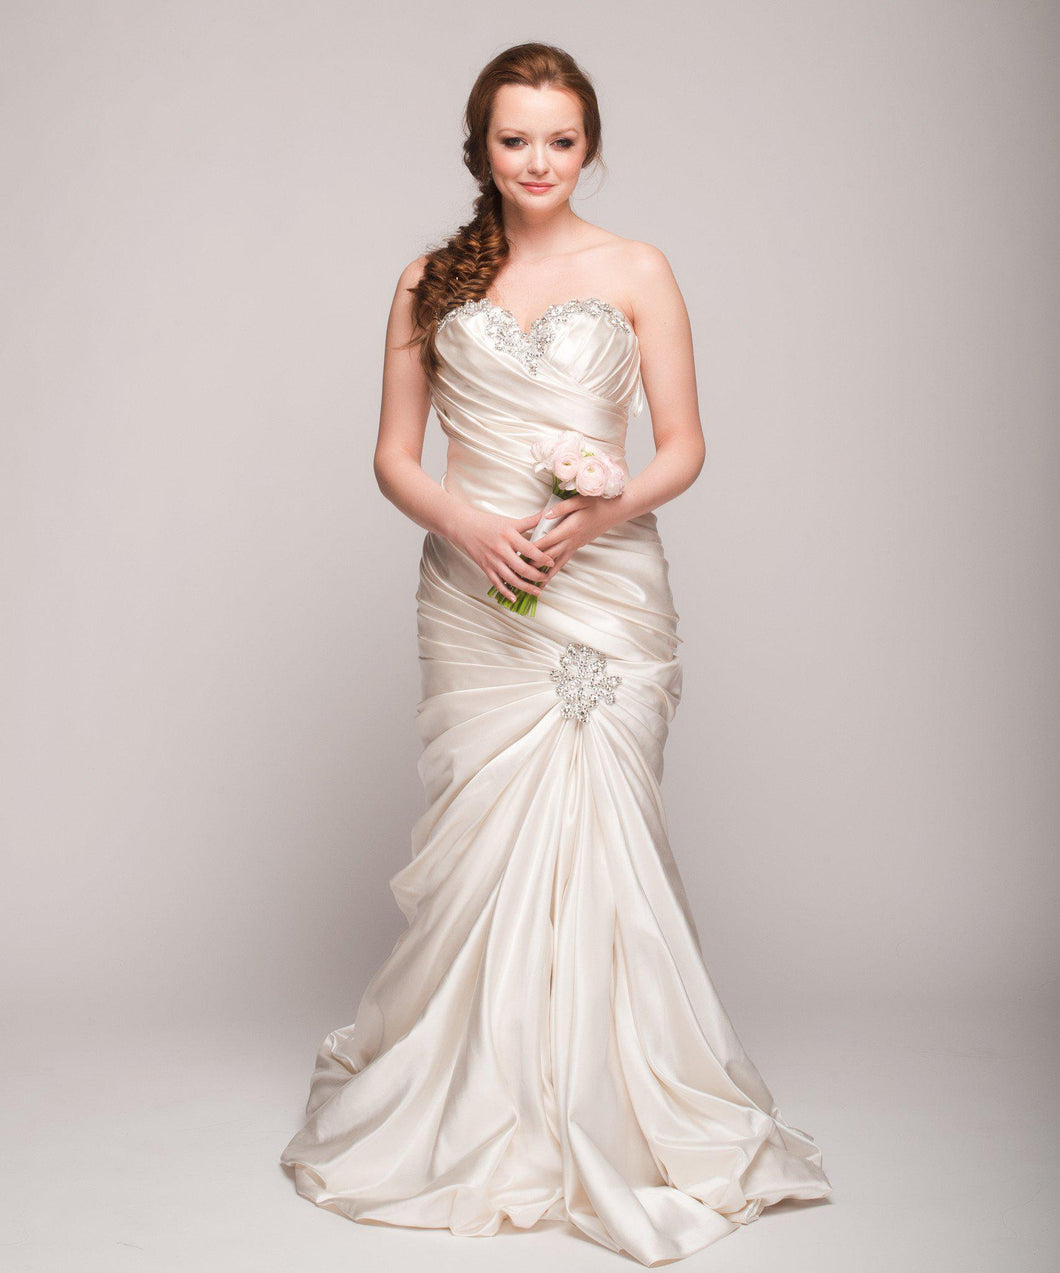 Pnina Tornai Ruched Mermaid Gown - Pnina Tornai - Nearly Newlywed Bridal Boutique - 1